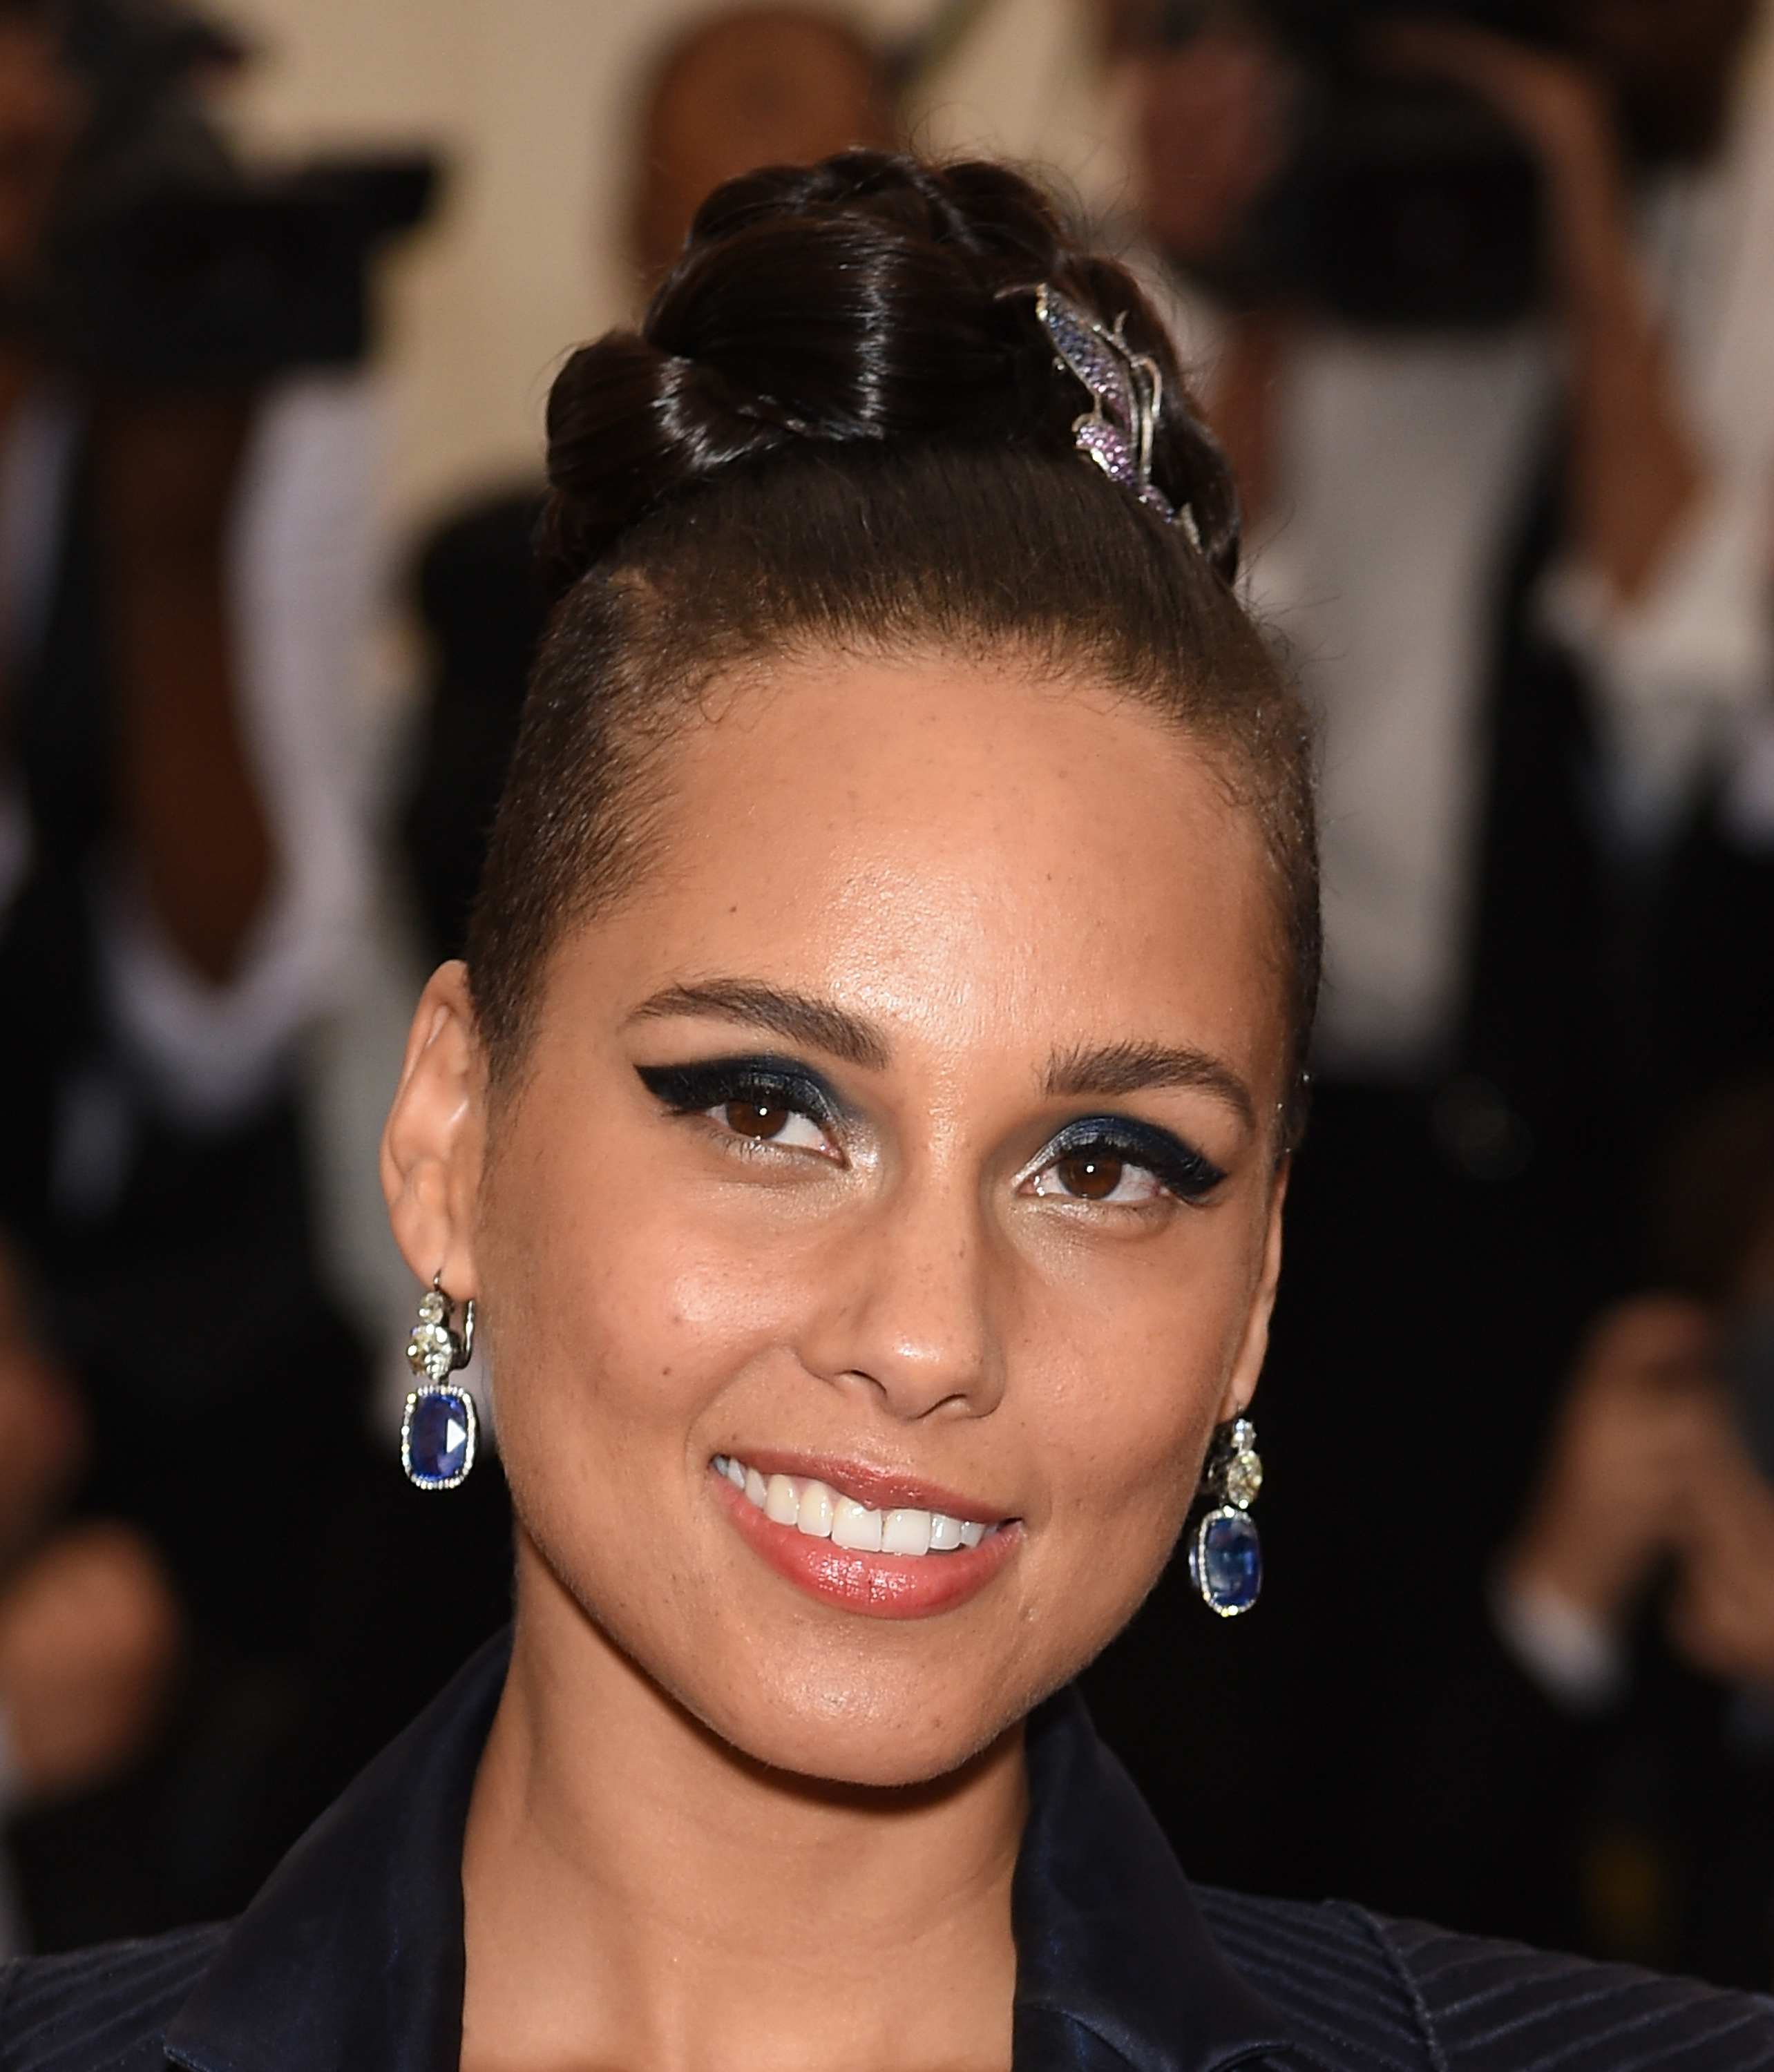 Alicia Keys attends the  China: Through The Looking Glass  Costume Institute Benefit Gala at the Metropolitan Museum of Art on May 4, 2015 in New York City.